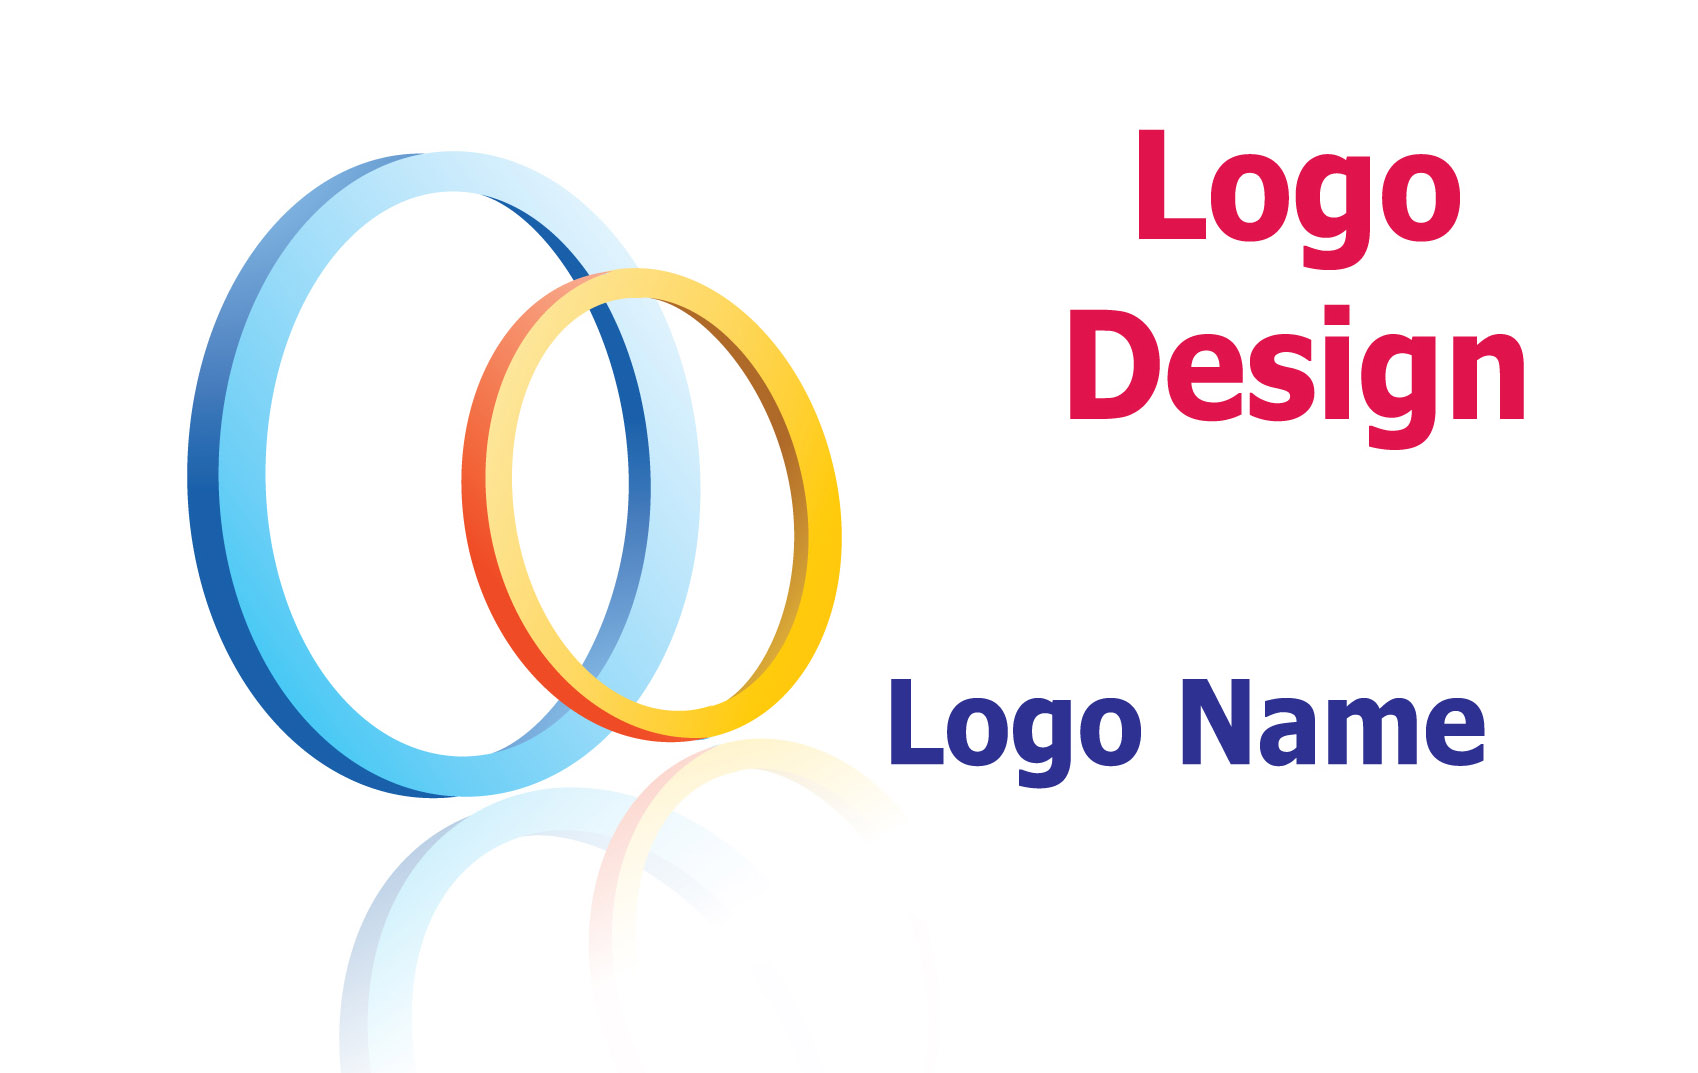 Unlimited Logo Designs + Flyer + Banner + Stationery + Fonts + Source Files + Colour Codes